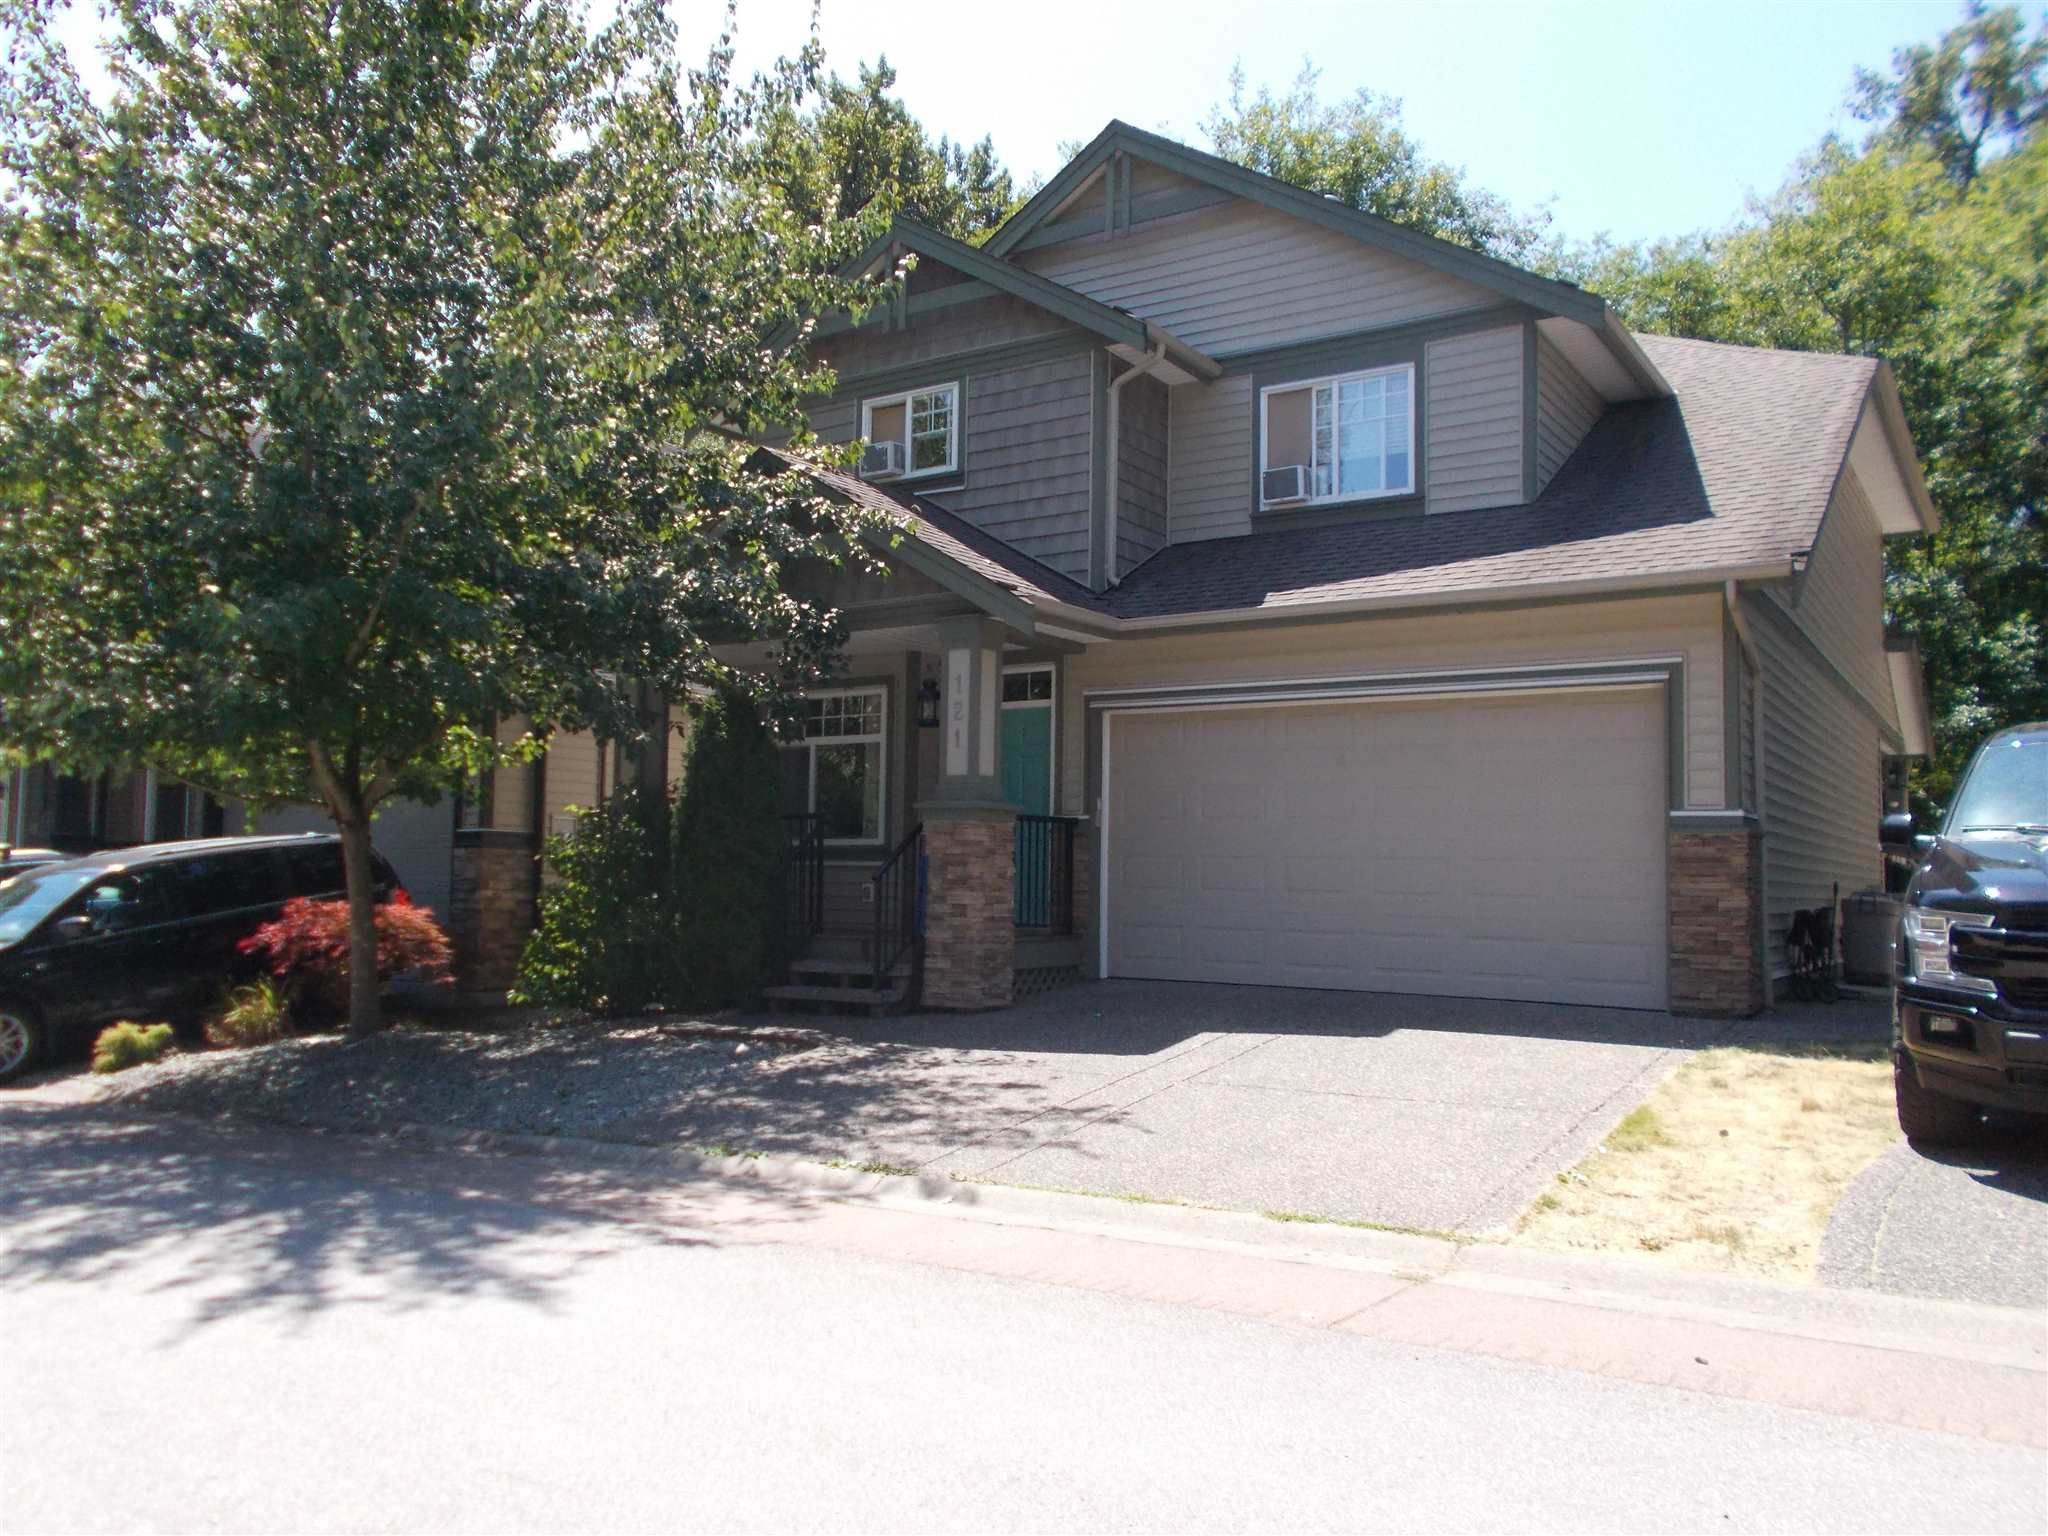 """Main Photo: 121 23925 116 Avenue in Maple Ridge: Cottonwood MR House for sale in """"Cherry Hills/Cottonwood"""" : MLS®# R2598007"""